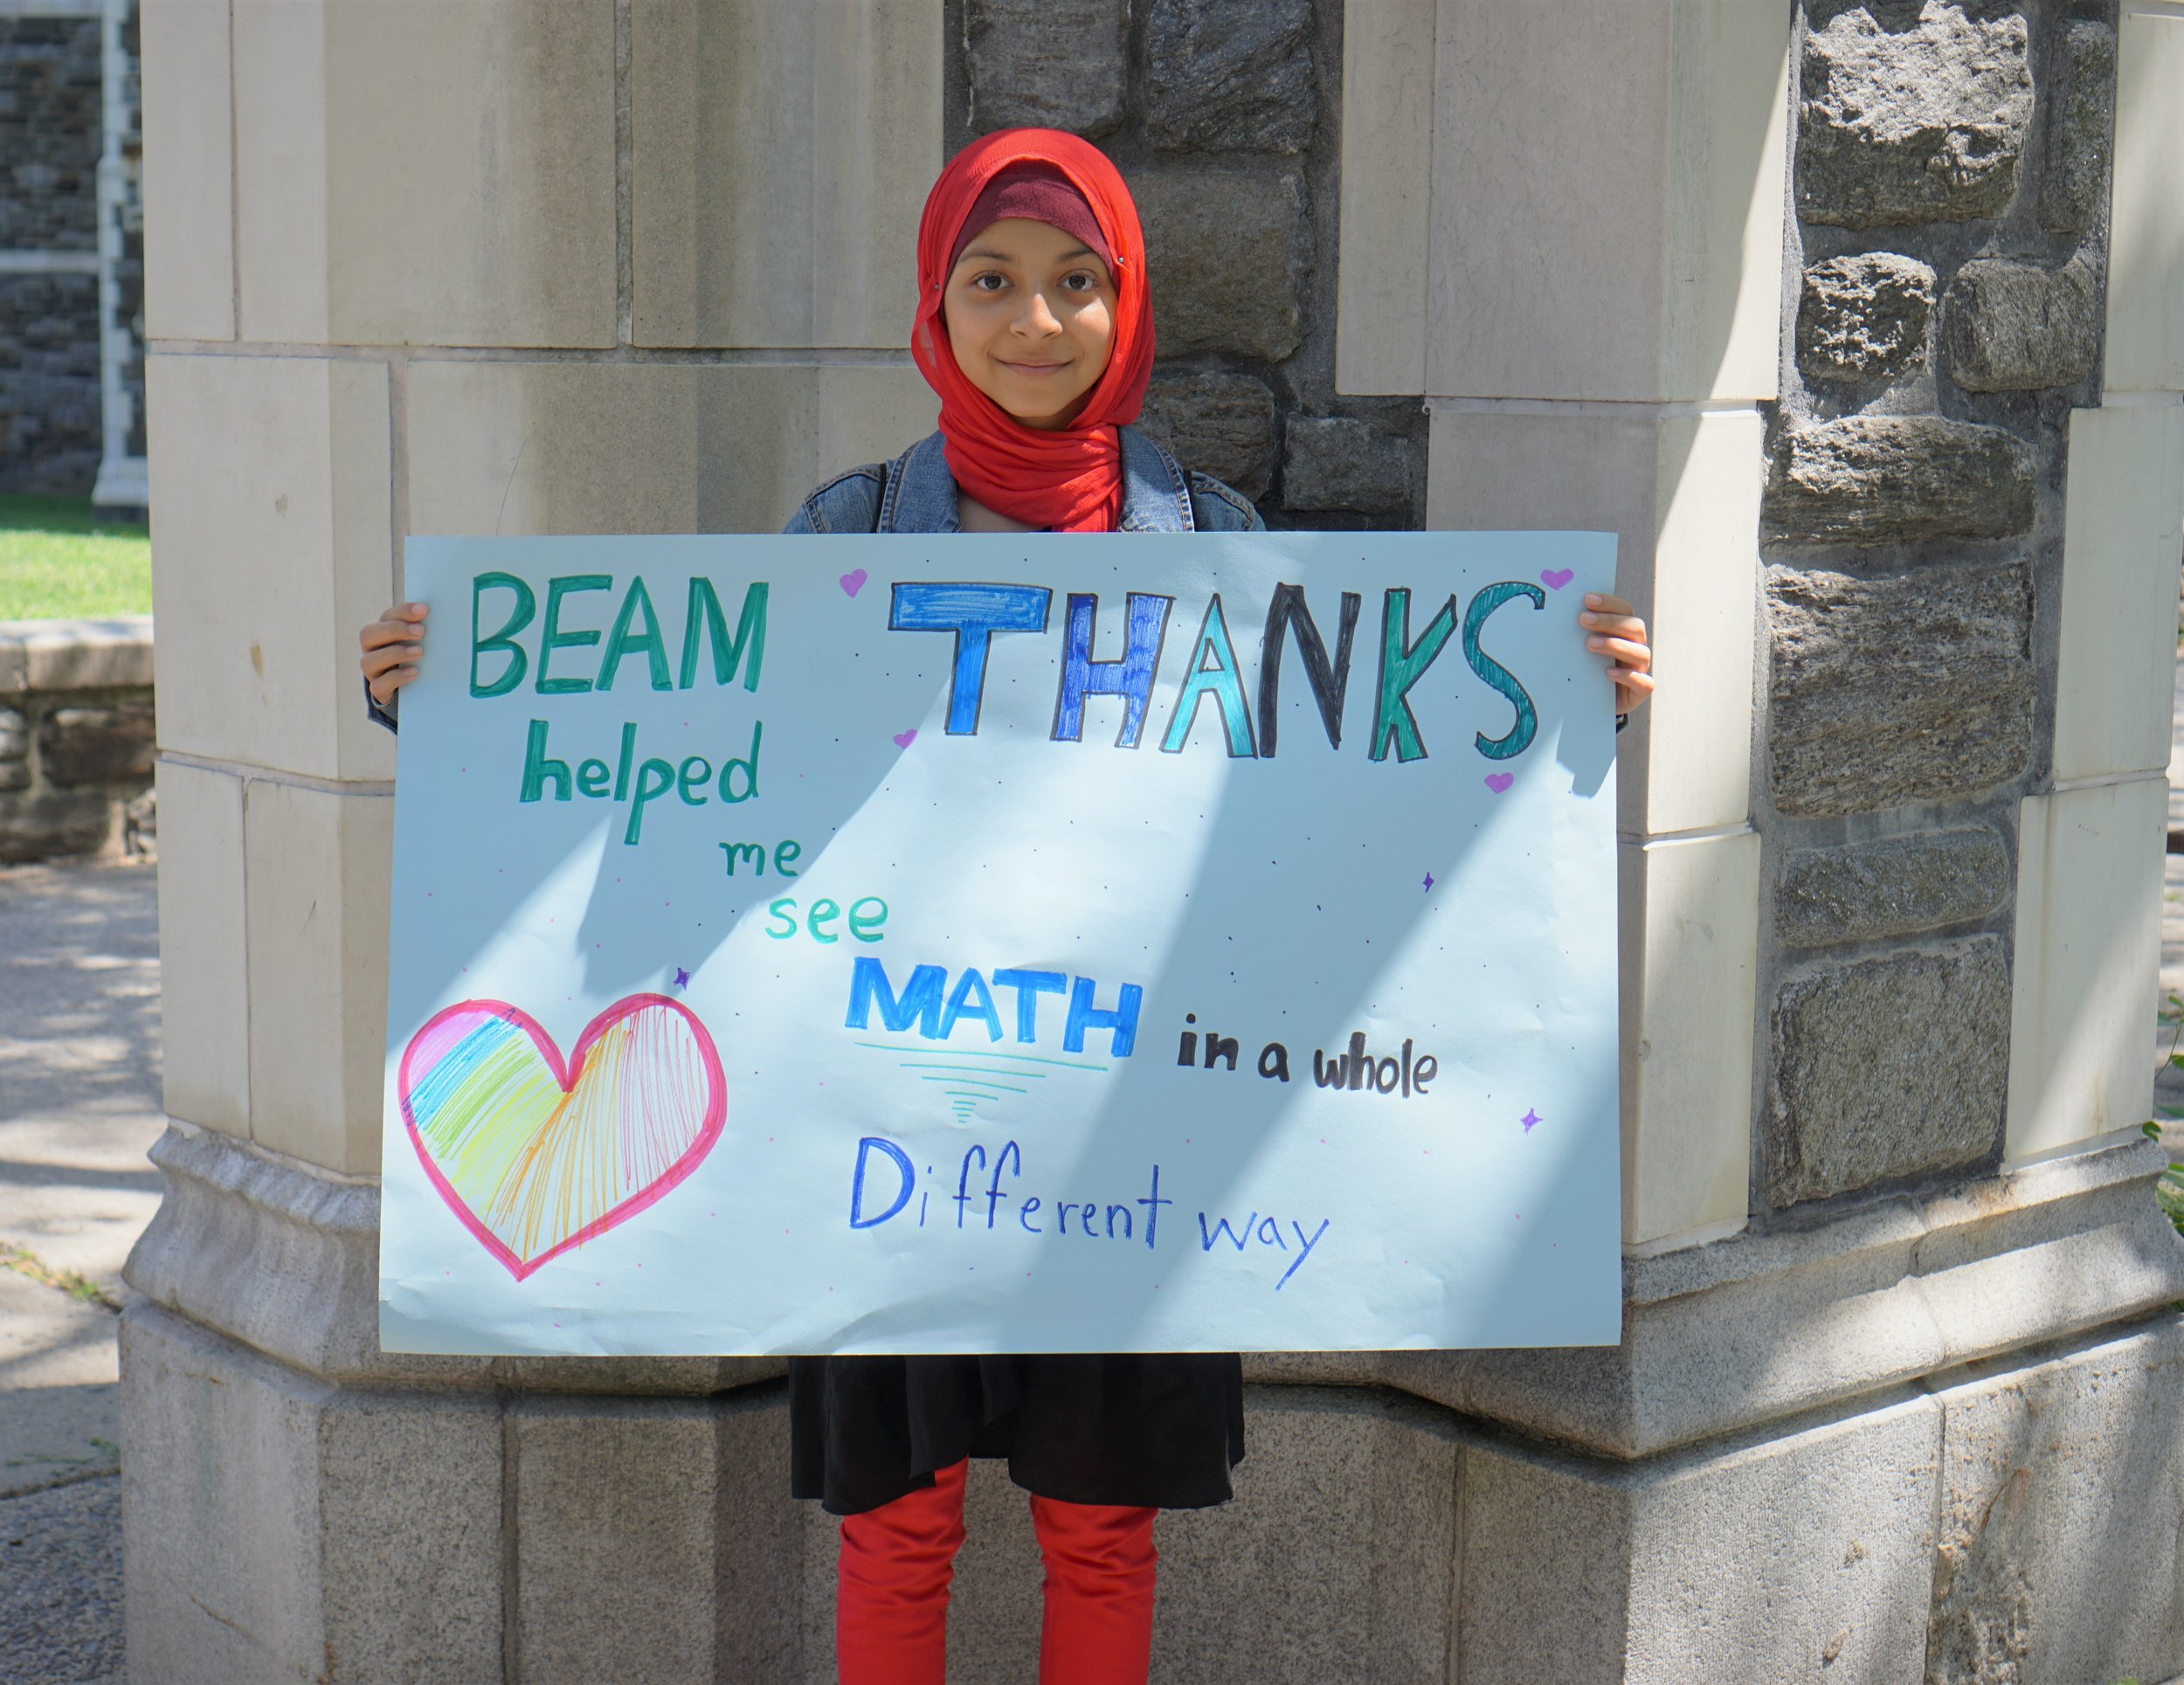 """BEAM helped me see math in a whole different way. THANKS."" —Sanjana, BEAM Discovery"